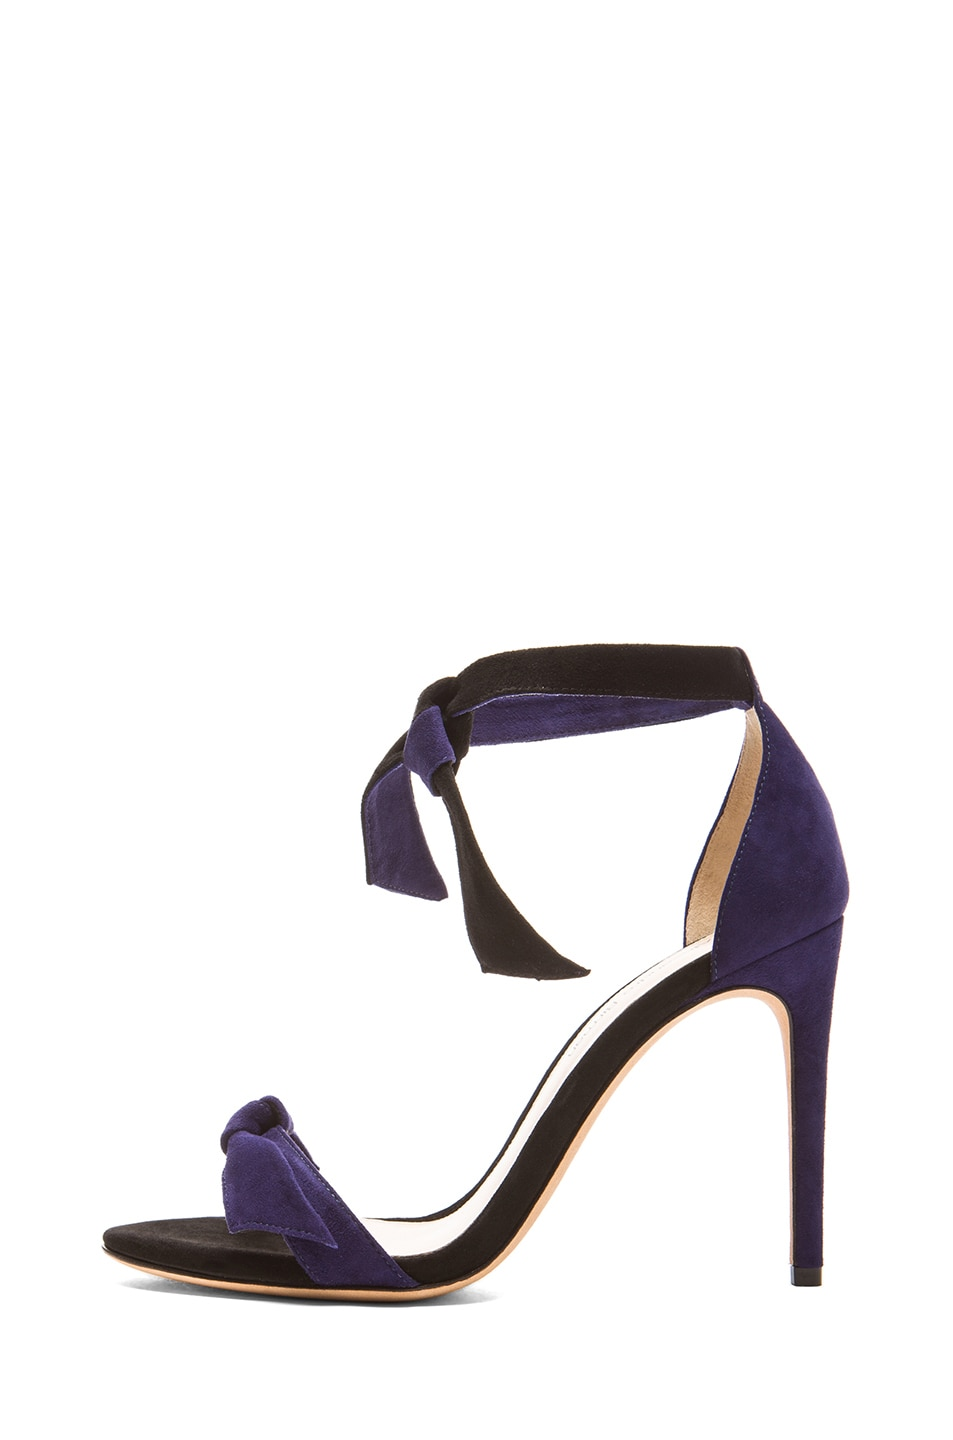 Image 1 of Alexandre Birman Clarita Suede Sandals in Navy & Black